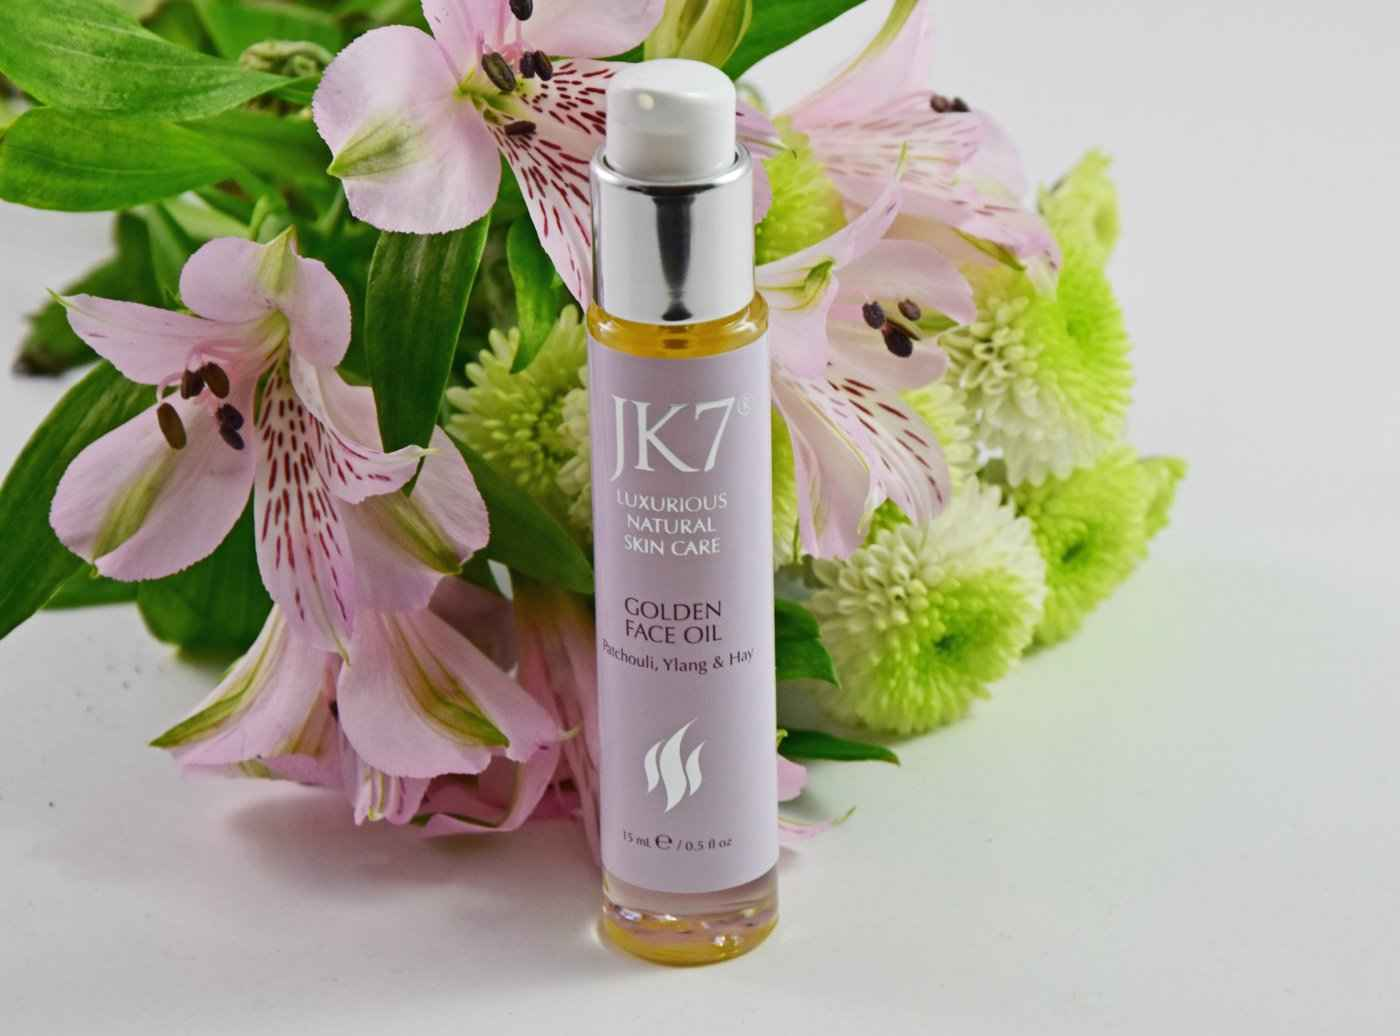 JK7 - Golden Face Oil Review